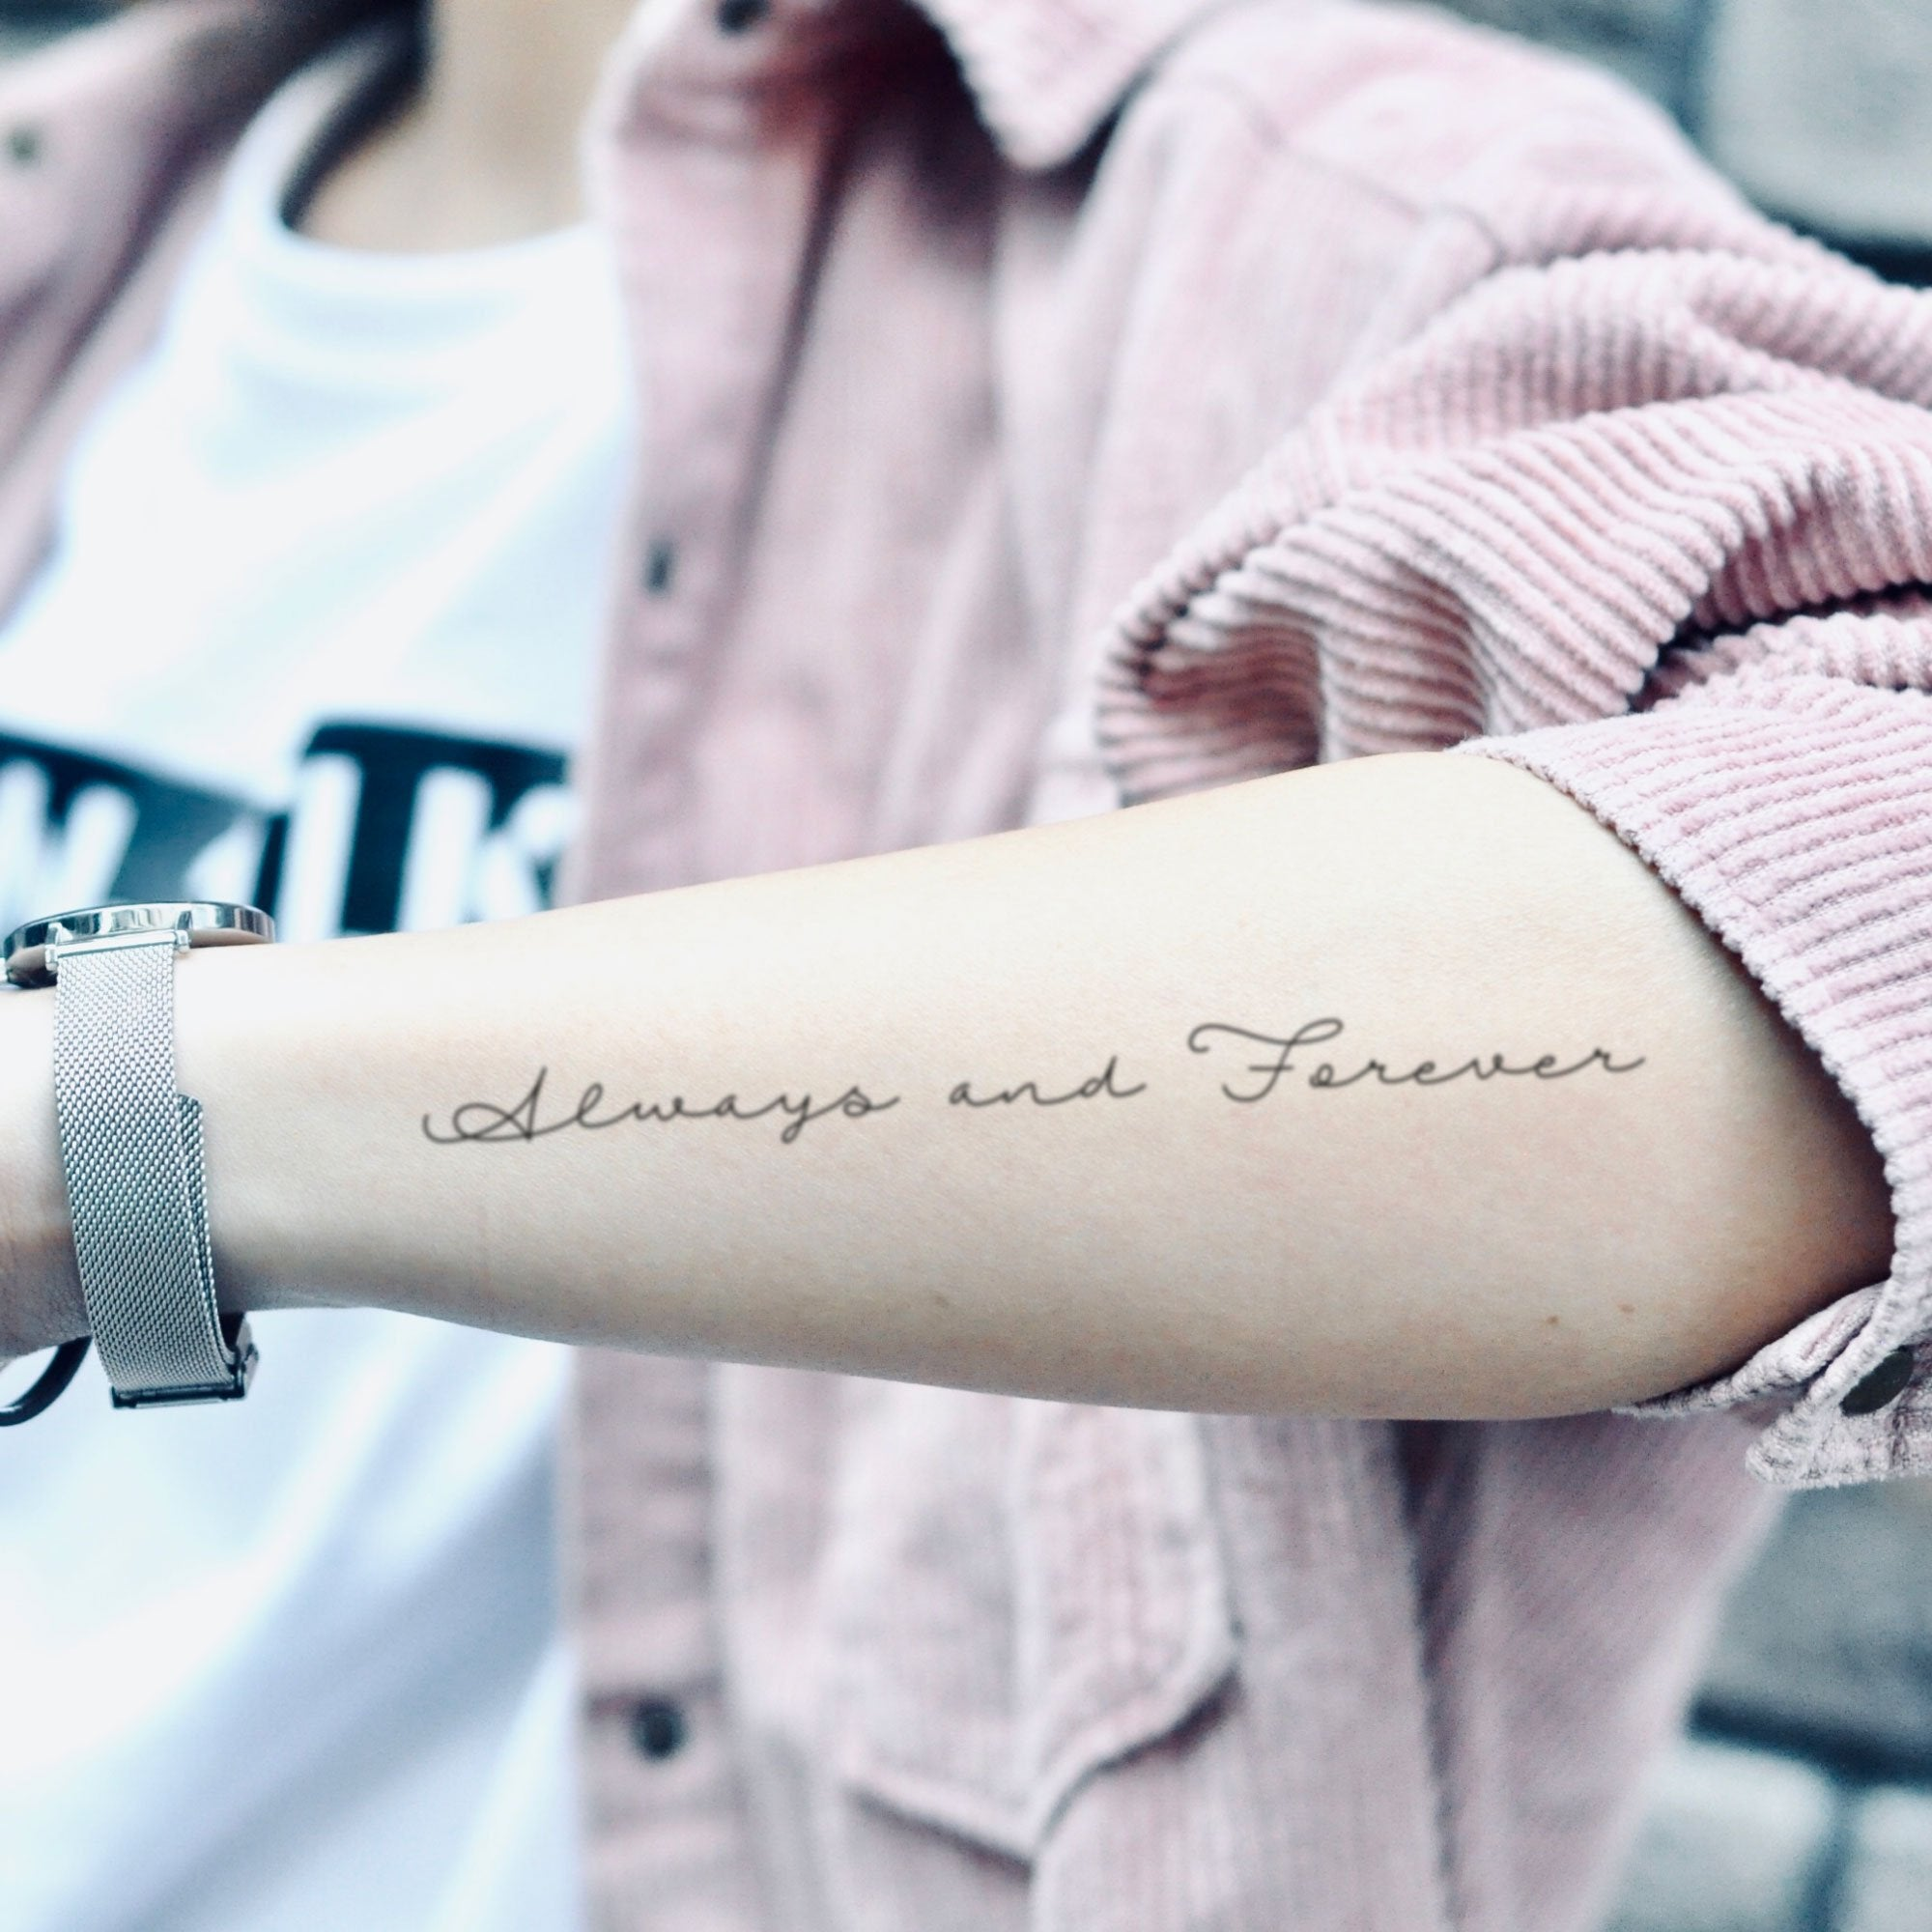 814e2cb9b fake medium always and forever lettering temporary tattoo sticker design  idea on forearm